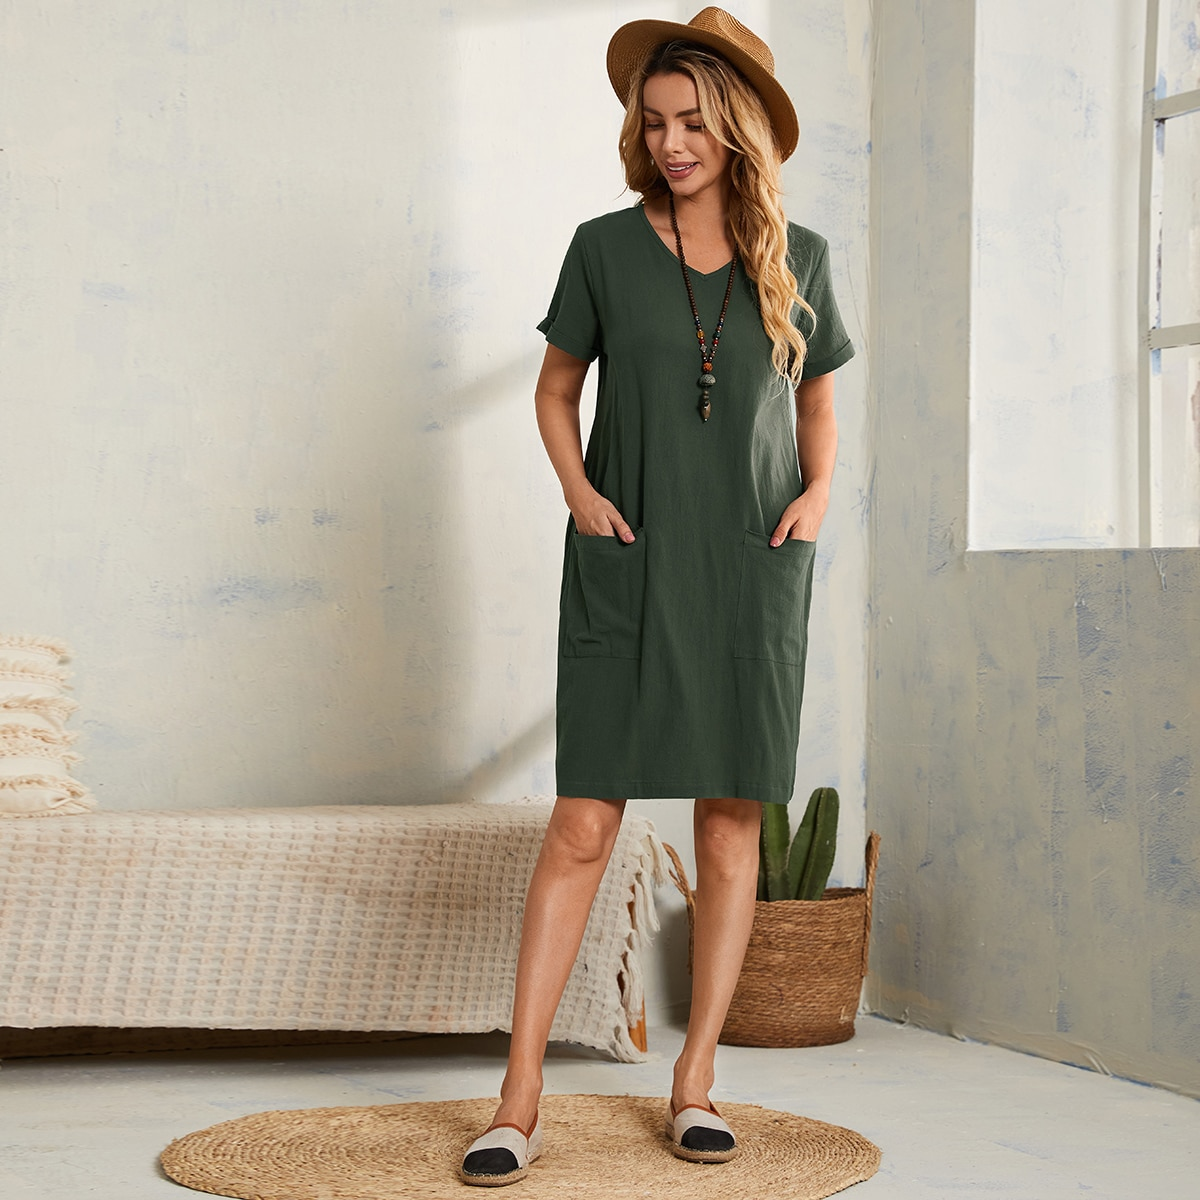 Dual Pocket V Neck Tunic Dress, SHEIN  - buy with discount